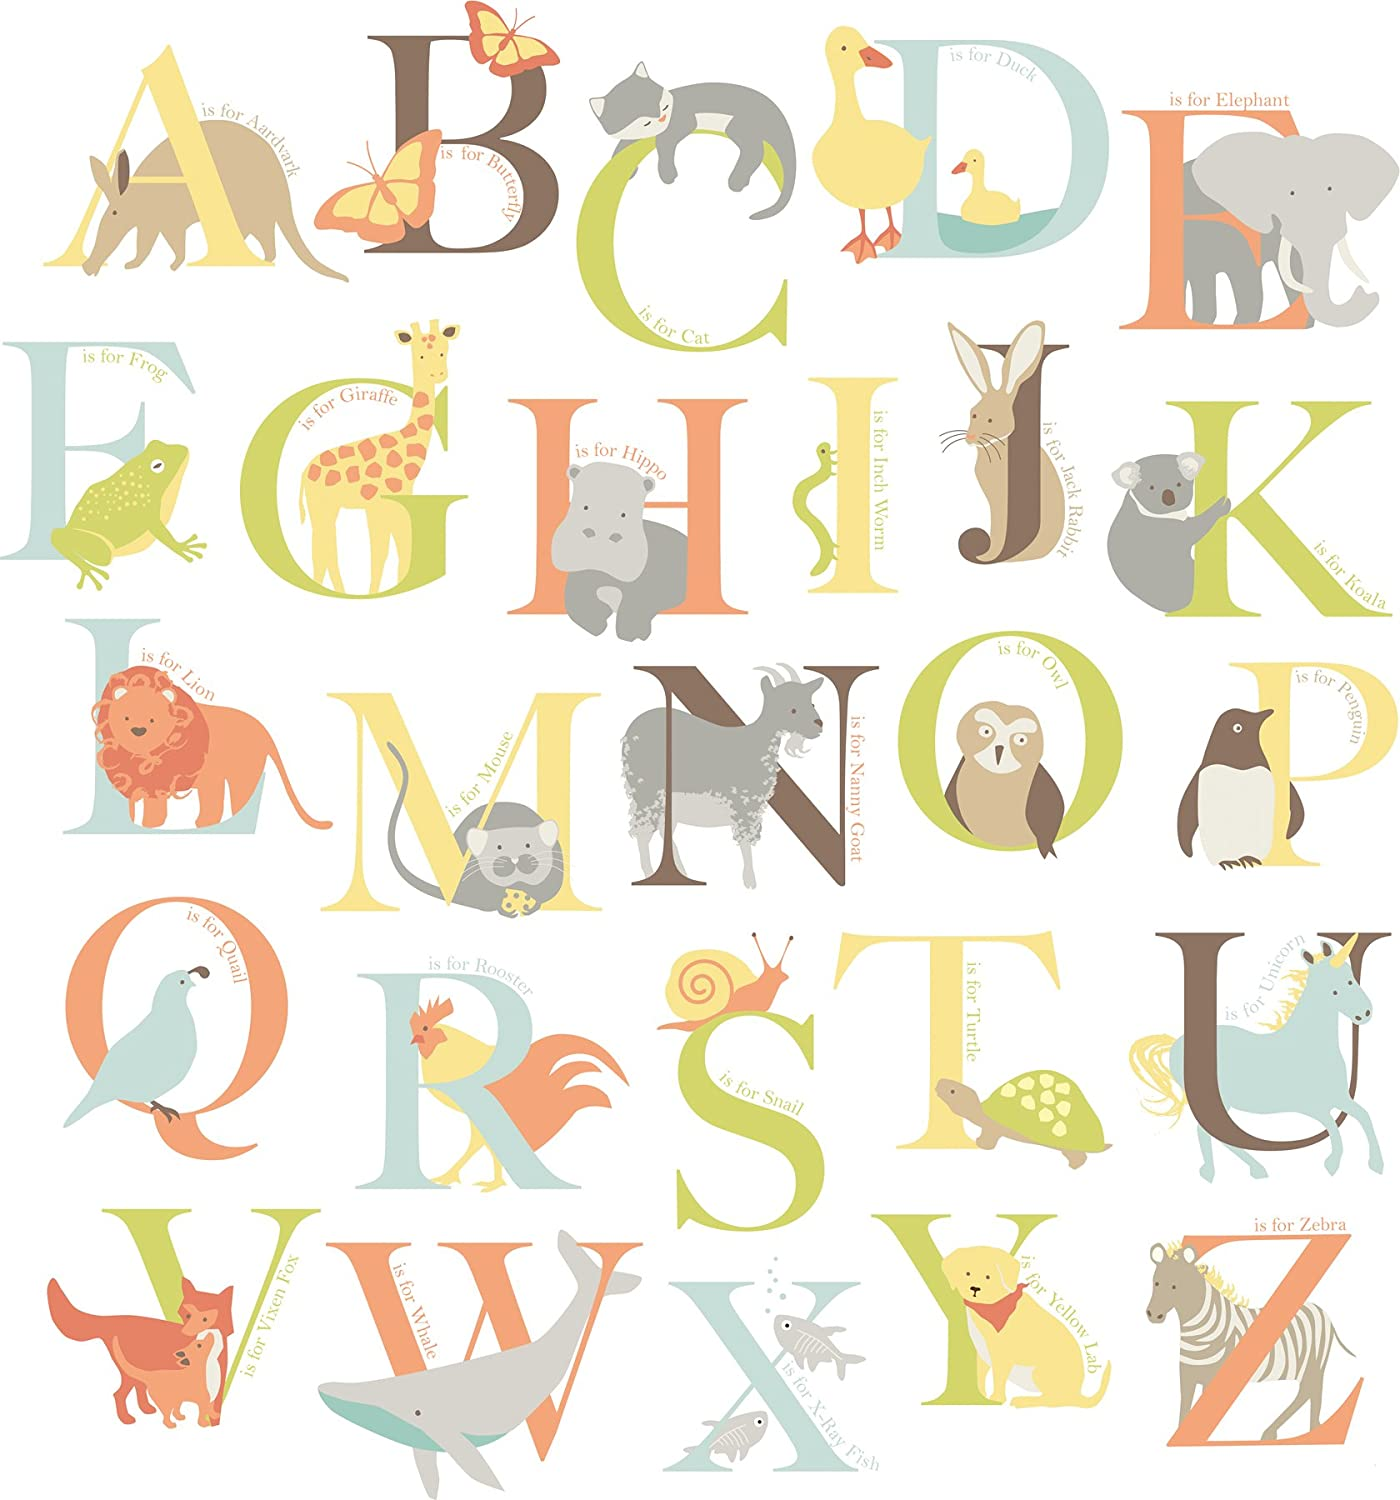 Wall Pops WPK0835 WPK0835 Alphabet Zoo Kit Baby Wall Decals   Decorative  Wall Appliques   Amazon.com